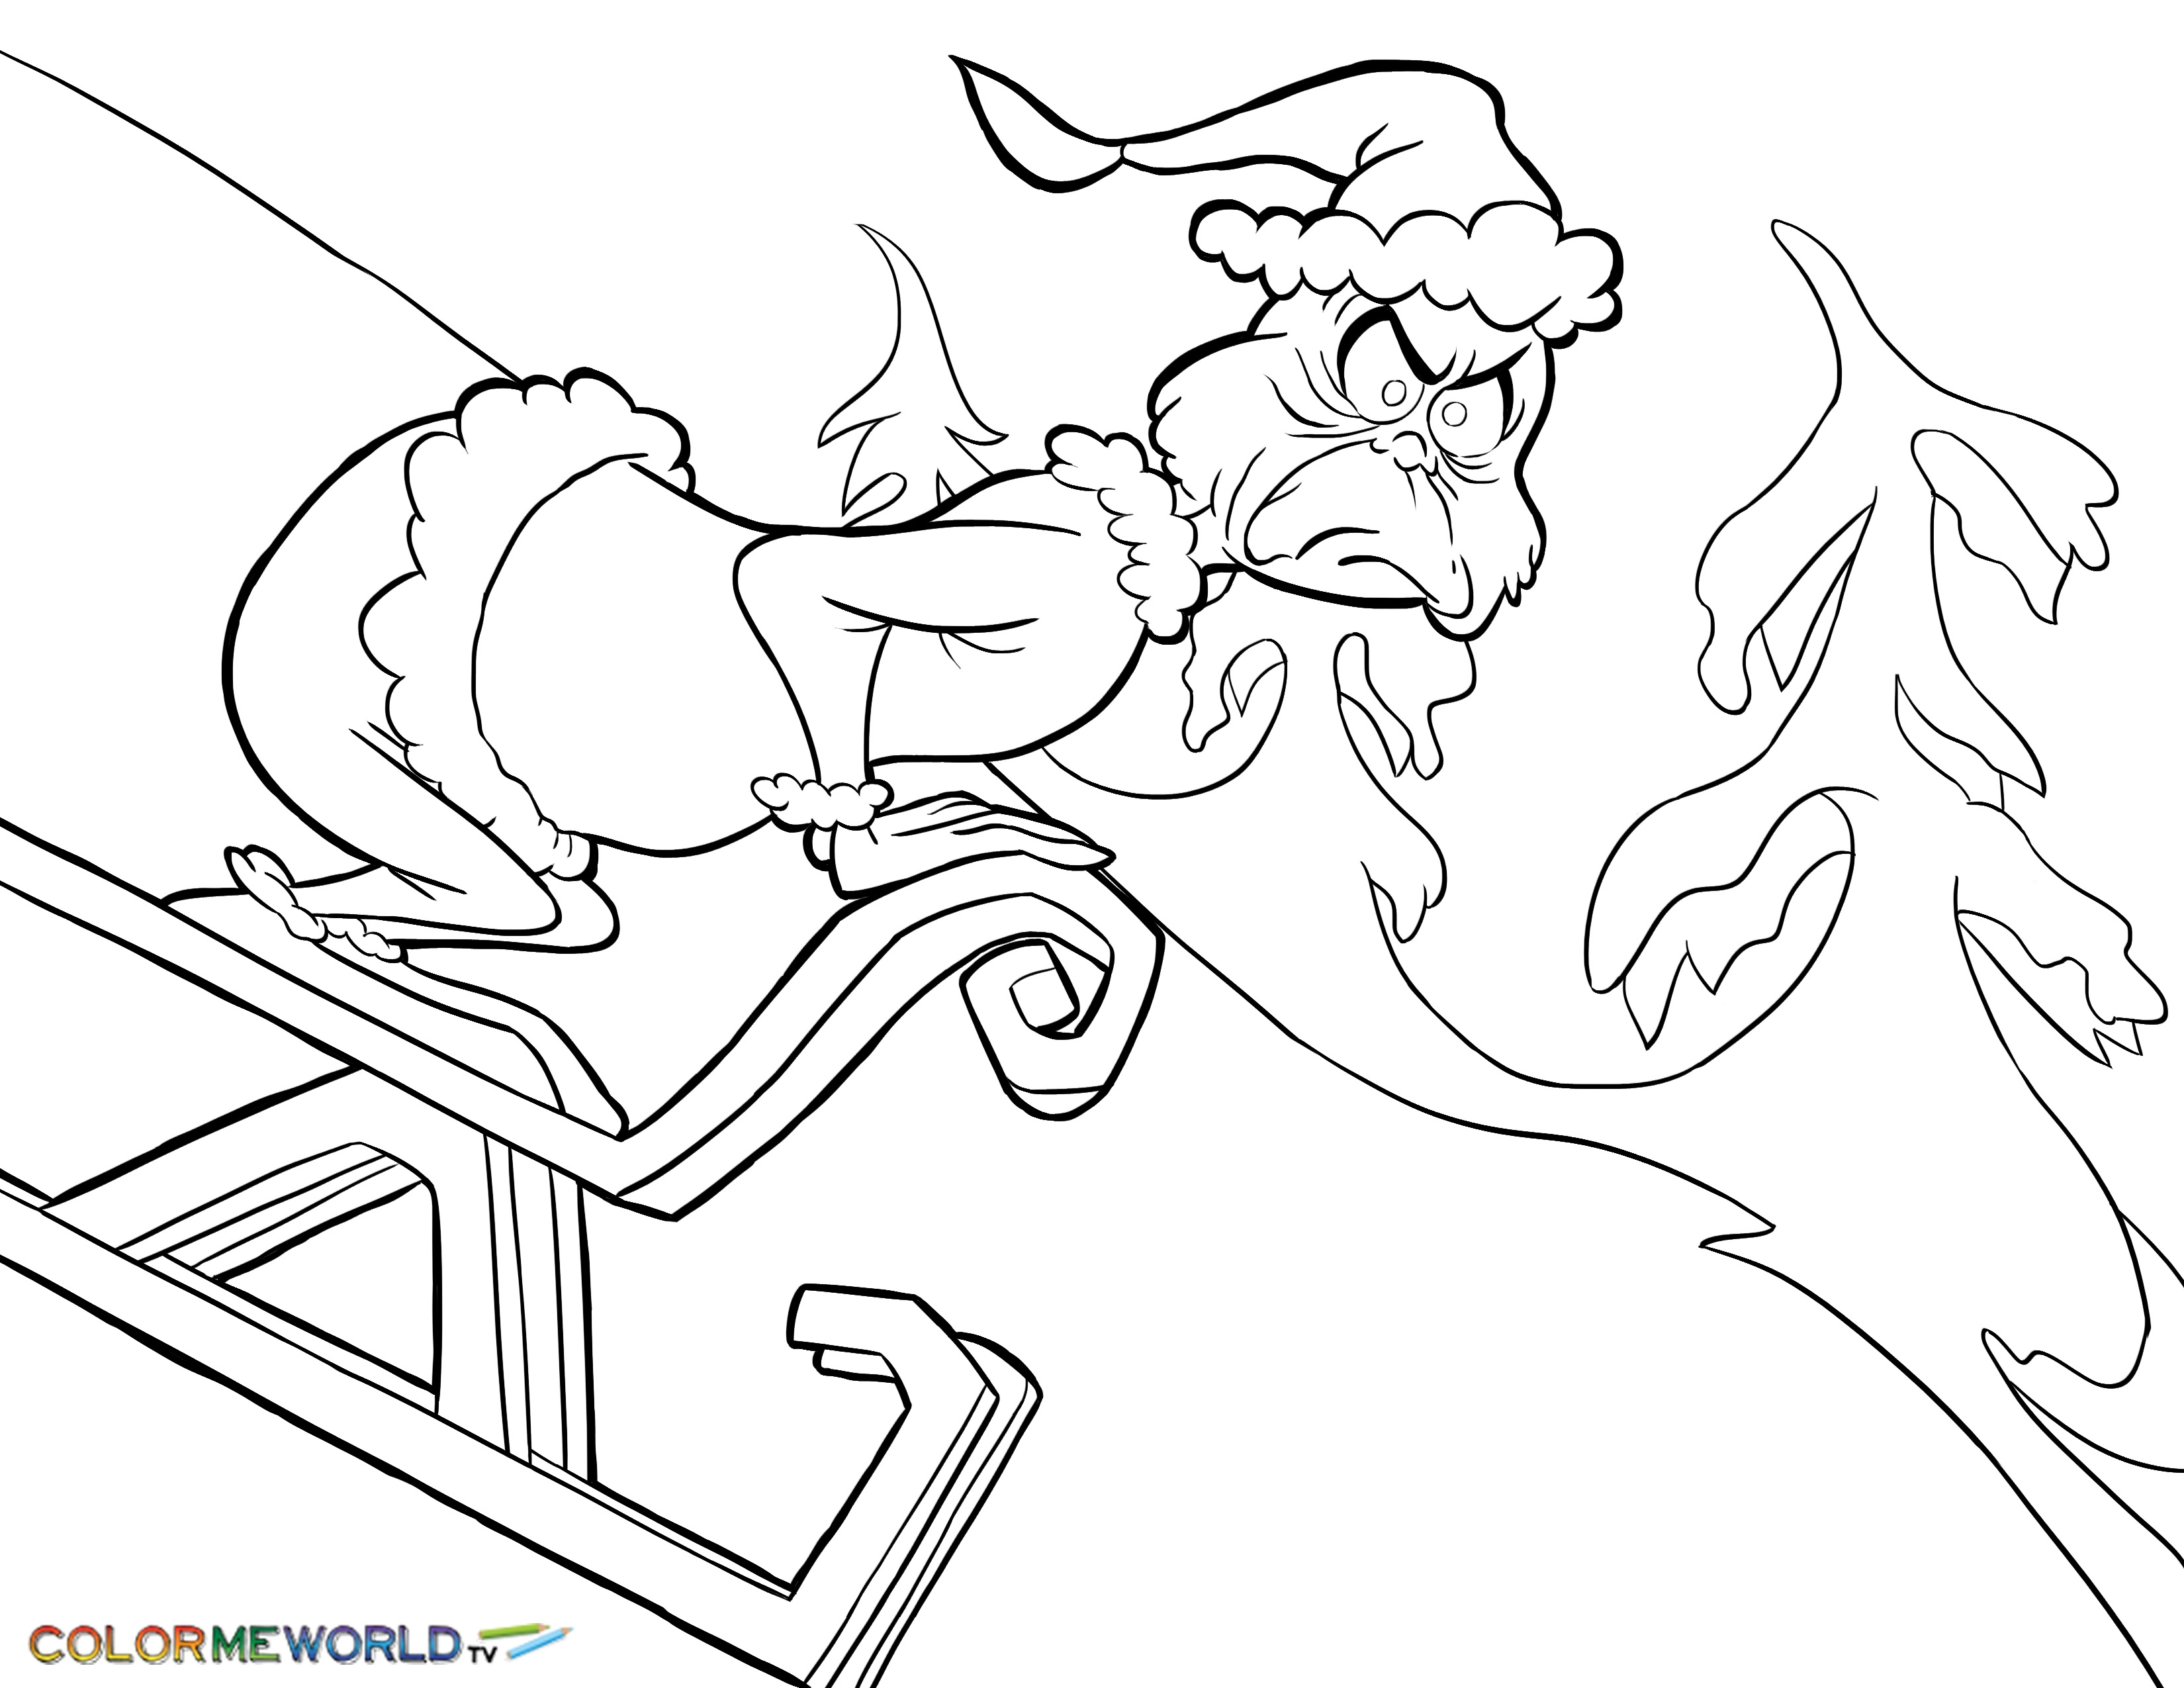 3300x2550 How The Grinch Stole Christmas Coloring Pages